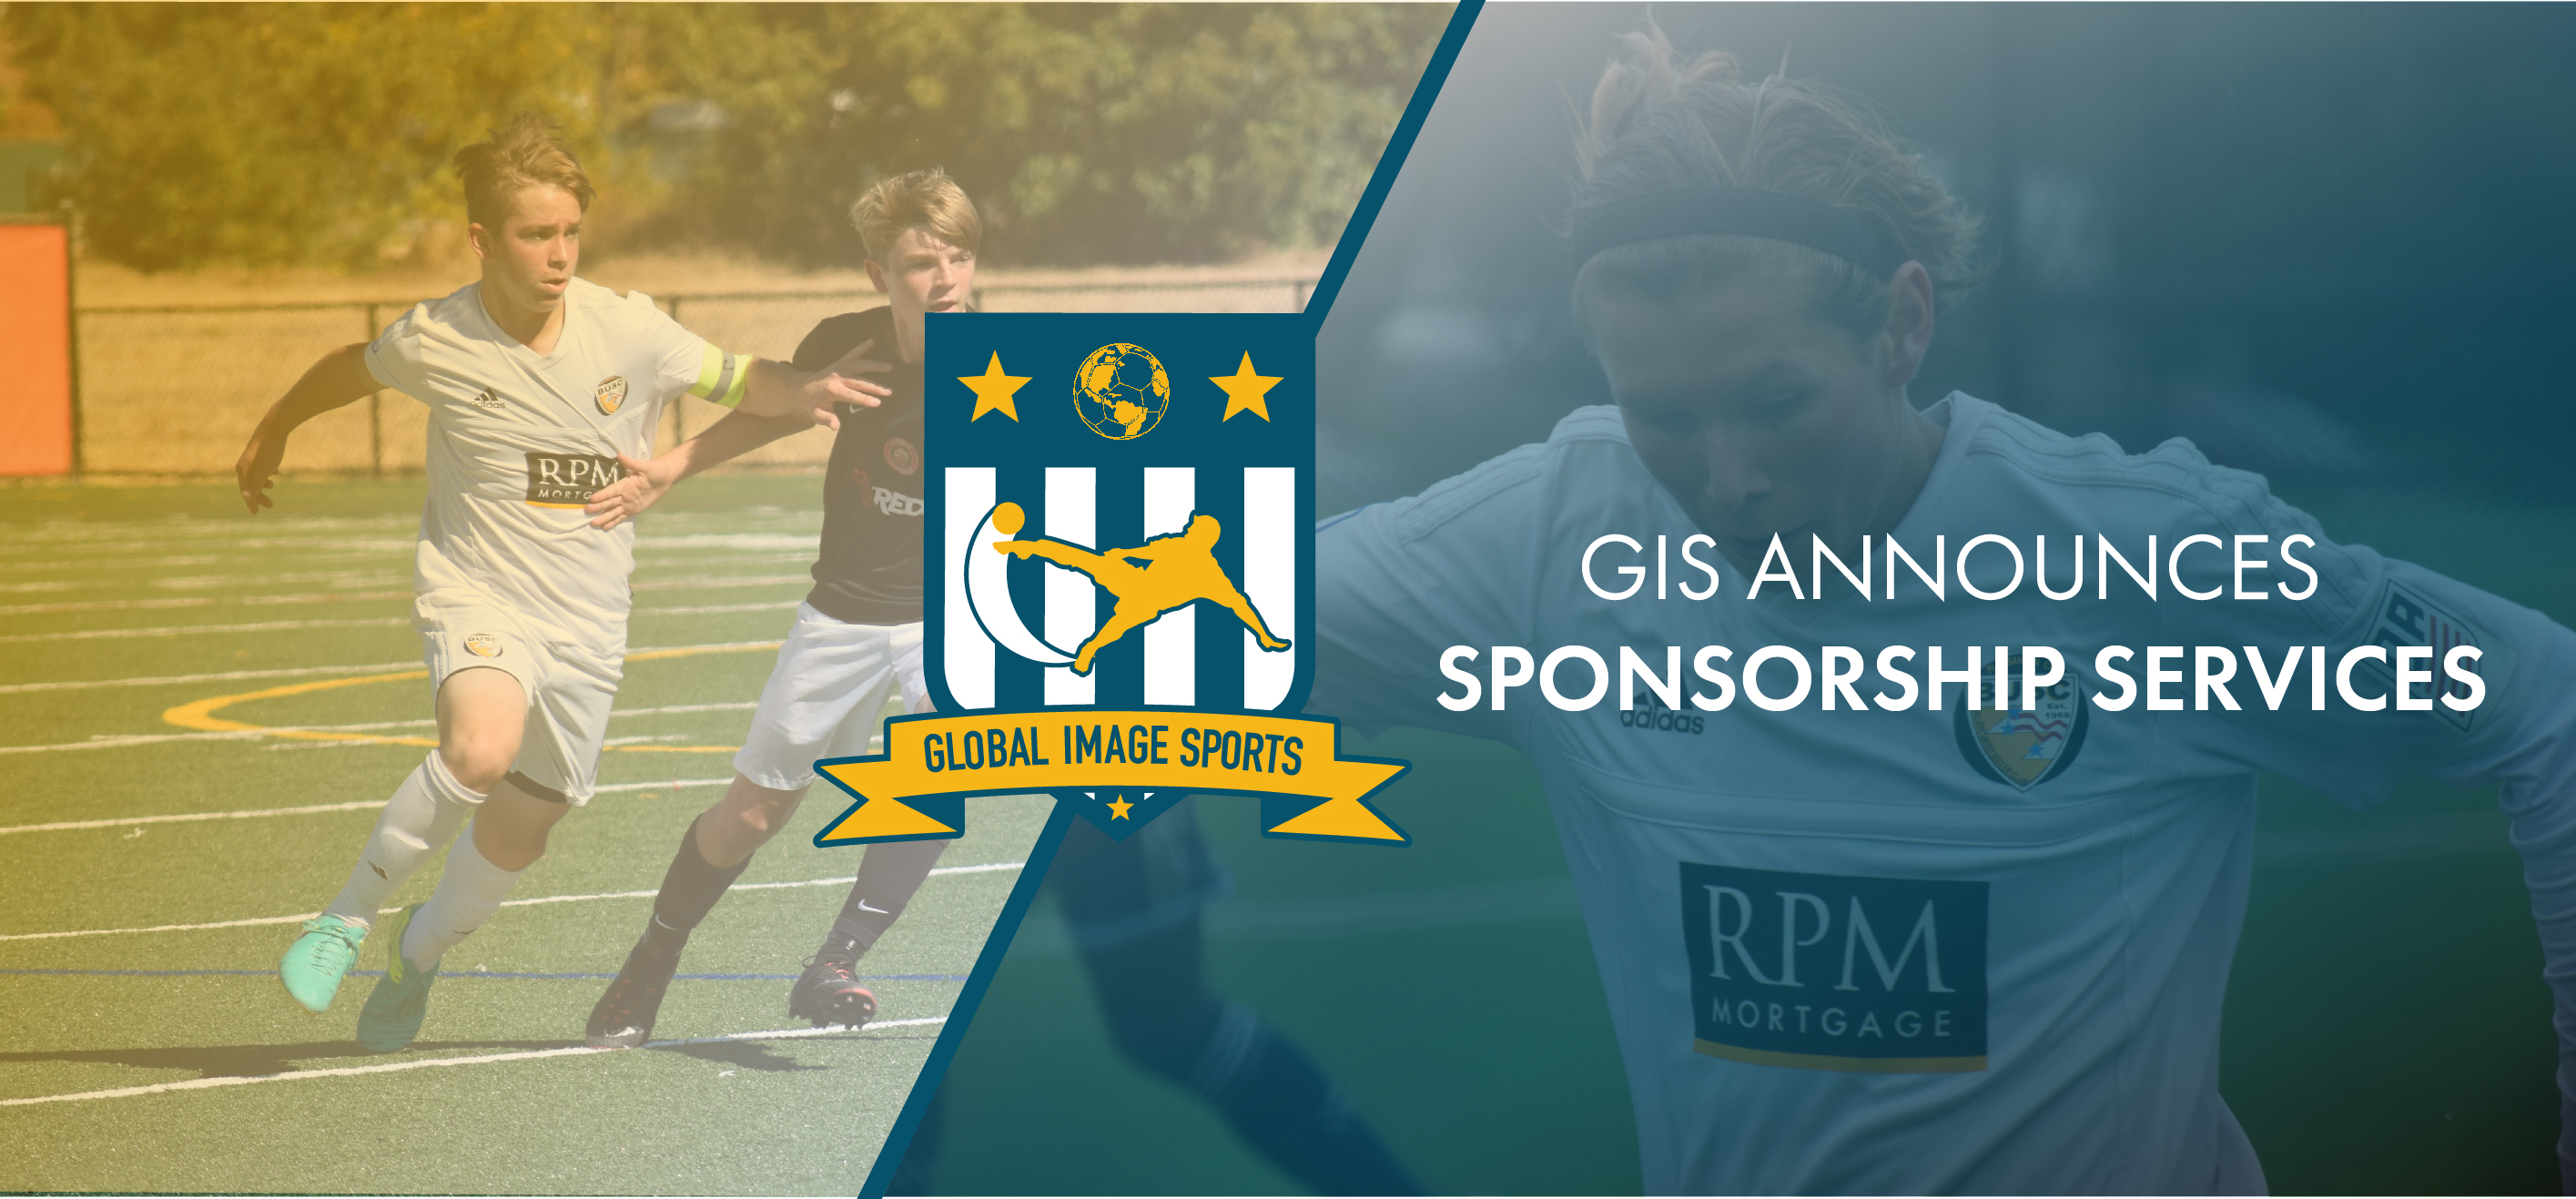 Global Image Sports announces Sponsorship services